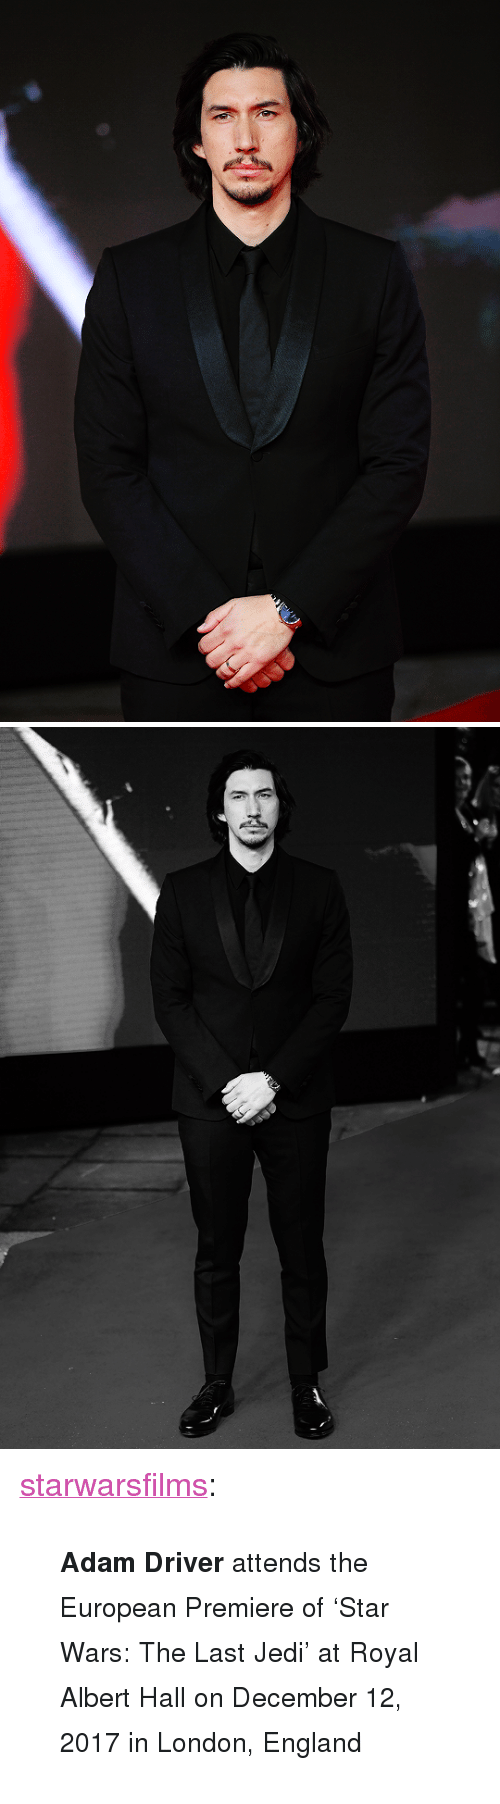 "Adam Driver: <p><a href=""https://starwarsfilms.tumblr.com/post/168472101125/adam-driver-attends-the-european-premiere-of-star"" class=""tumblr_blog"">starwarsfilms</a>:</p>  <blockquote><p><small><b>Adam Driver</b> attends the European Premiere of 'Star Wars: The Last Jedi' at Royal Albert Hall on December 12, 2017 in London, England</small></p></blockquote>"